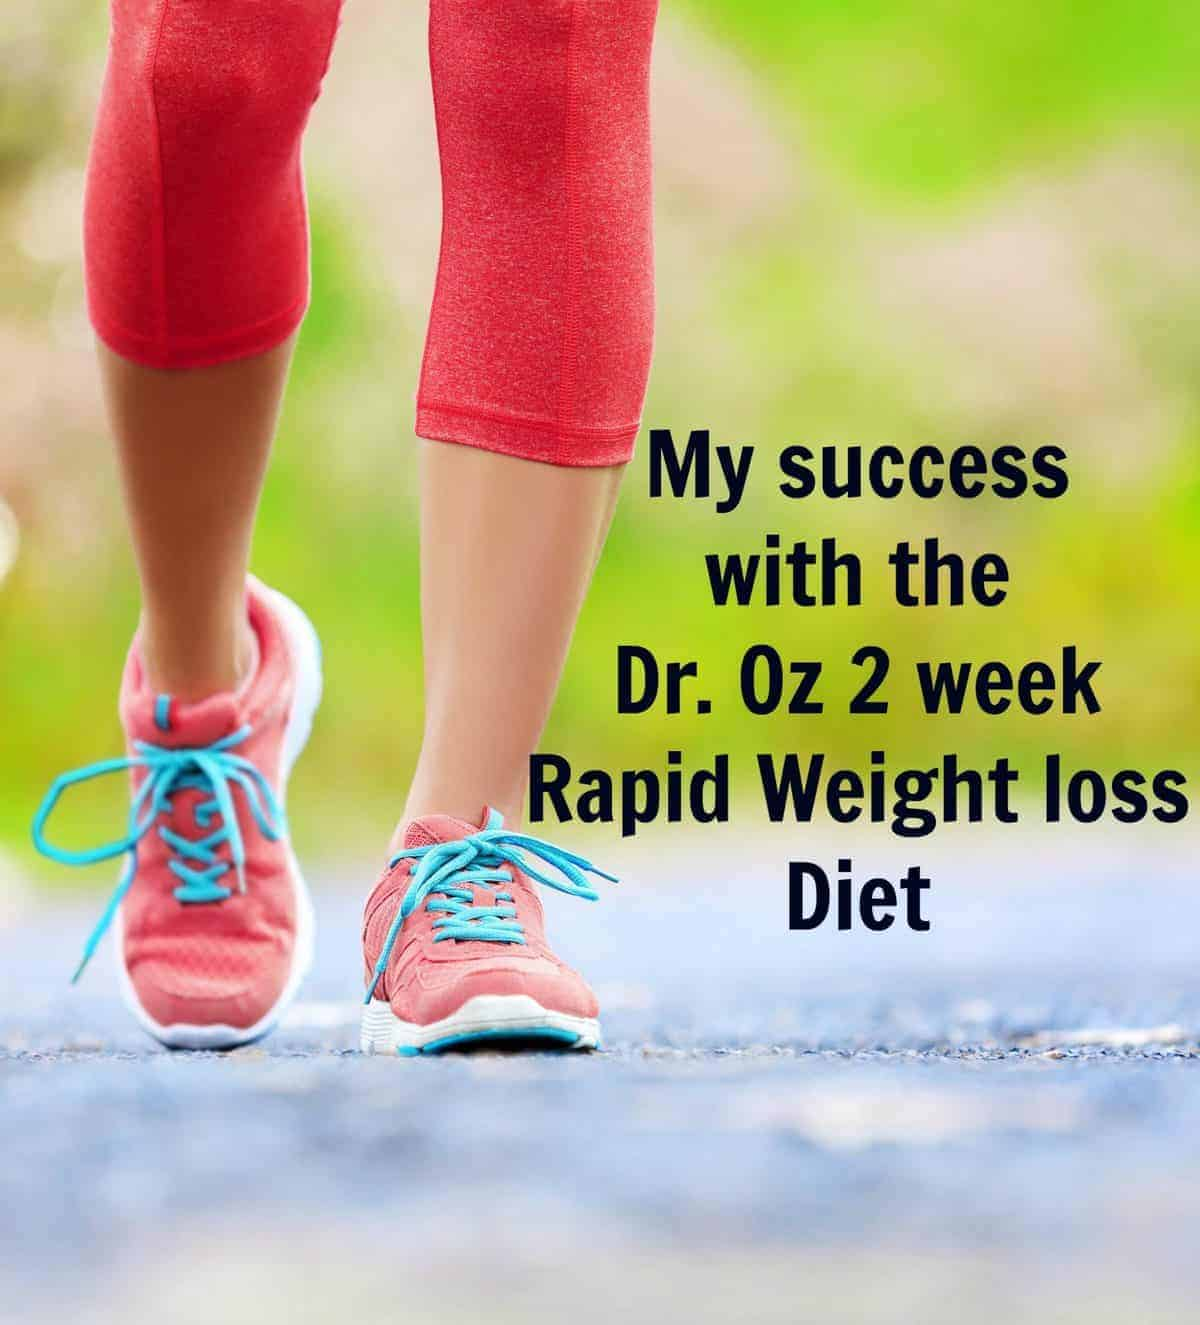 How I lost 8 pounds in 2 weeks with the Dr. Oz 2-Week Rapid Weight loss Diet